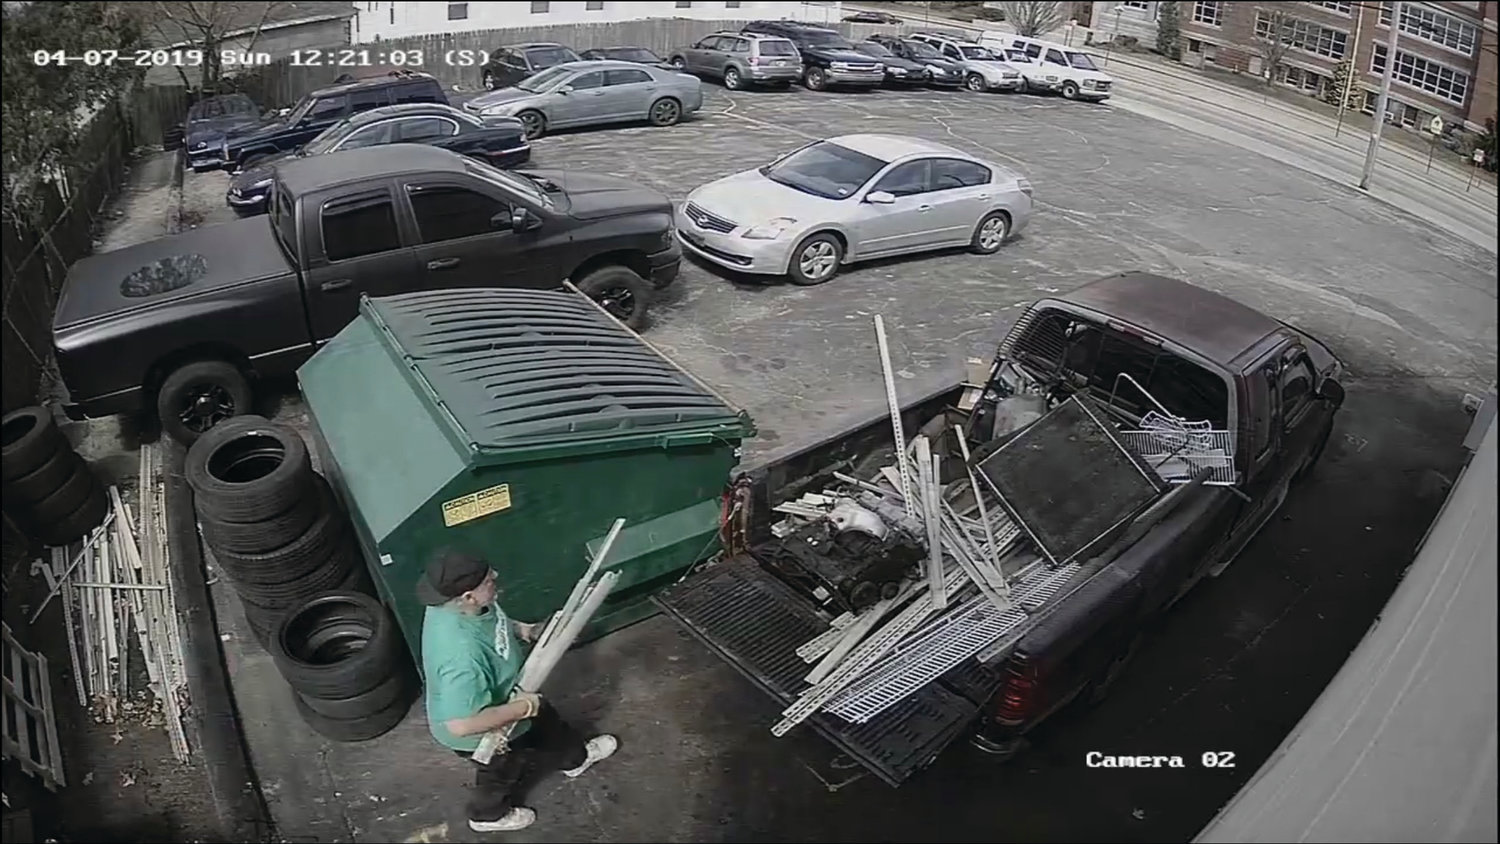 AUTO PARTS PIRATE: This image, taken from surveillance footage at Park Avenue Auto Services, shows a man wanted in connection with the theft of more than $2,000 in auto parts and metal items.